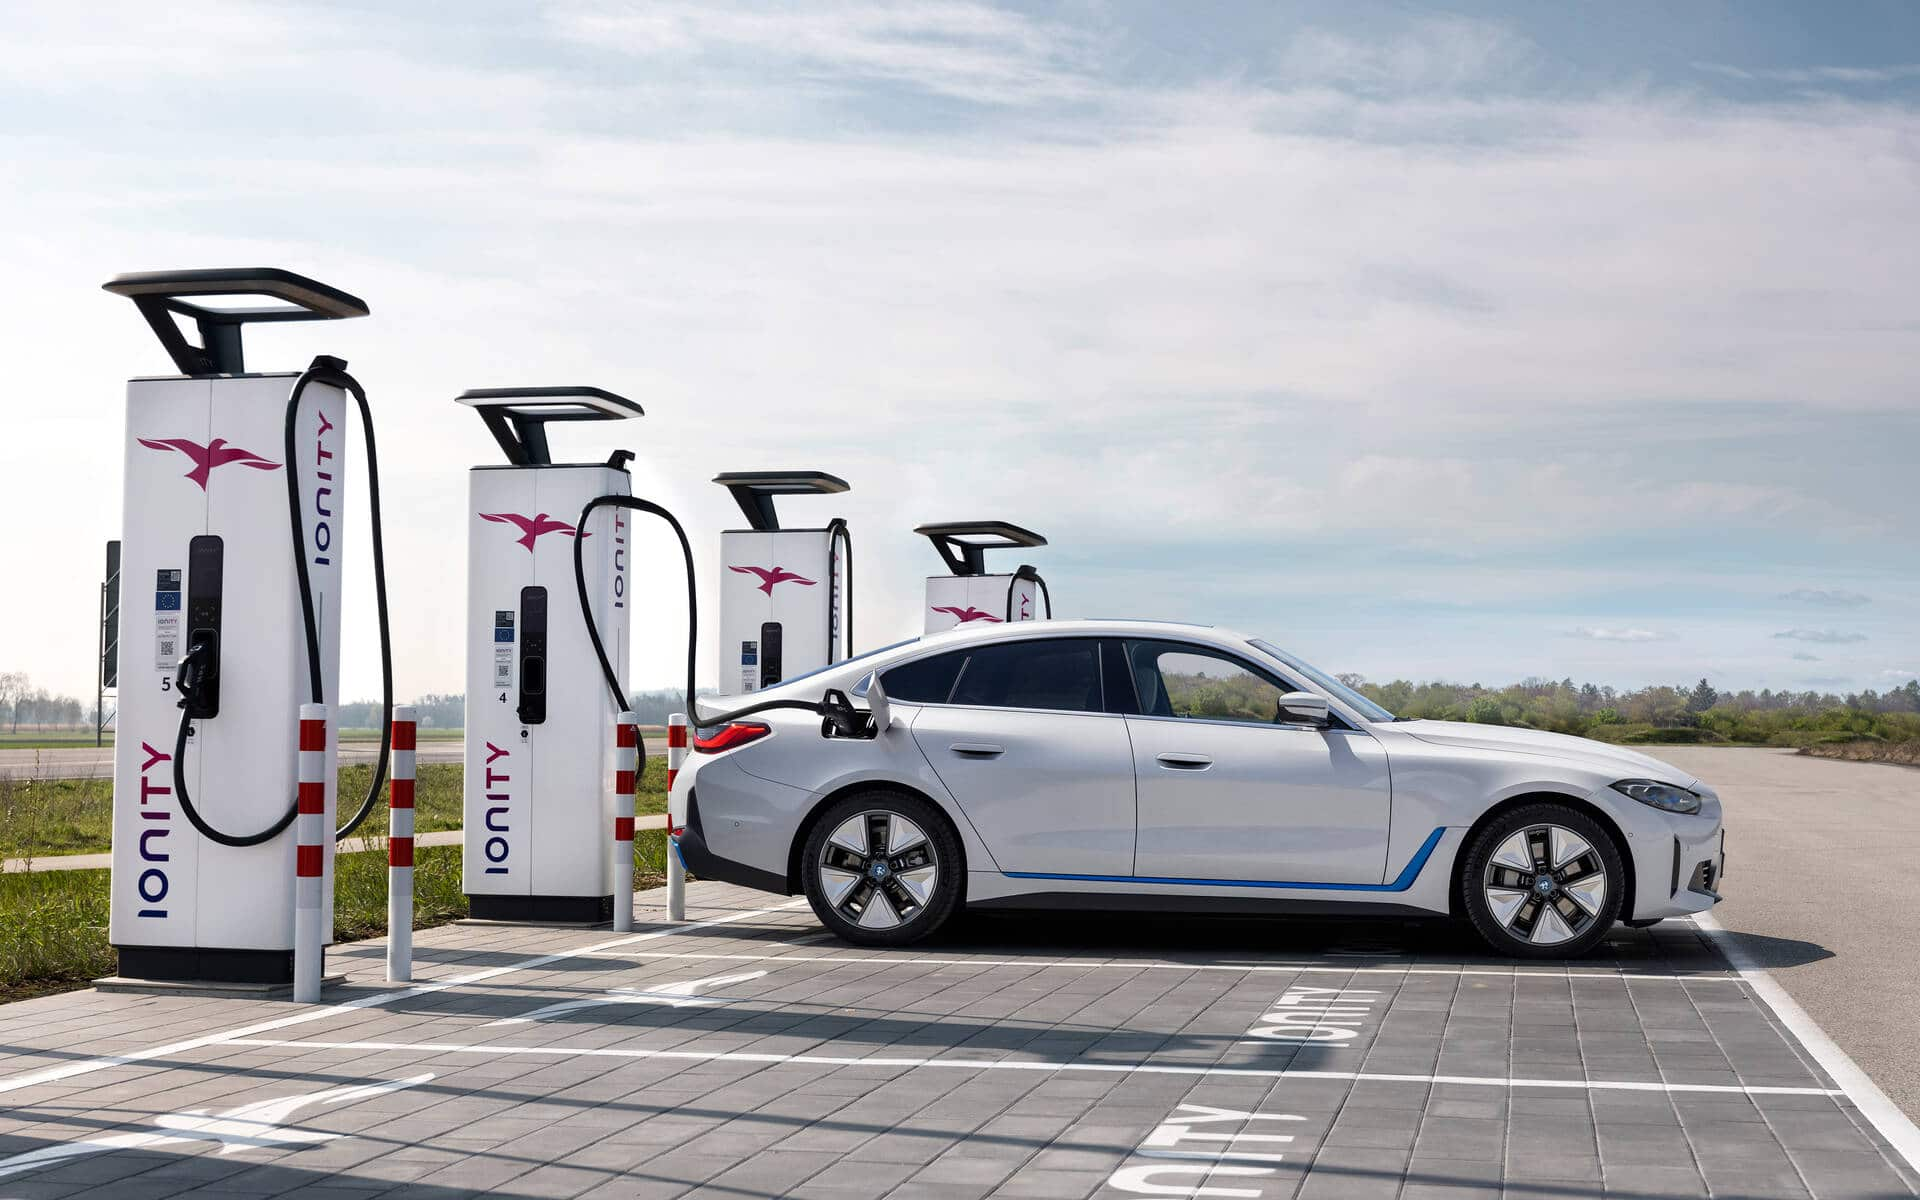 """The """"My BMW"""" app is used to locate the charging stations. Source: www.guideauto.ca"""